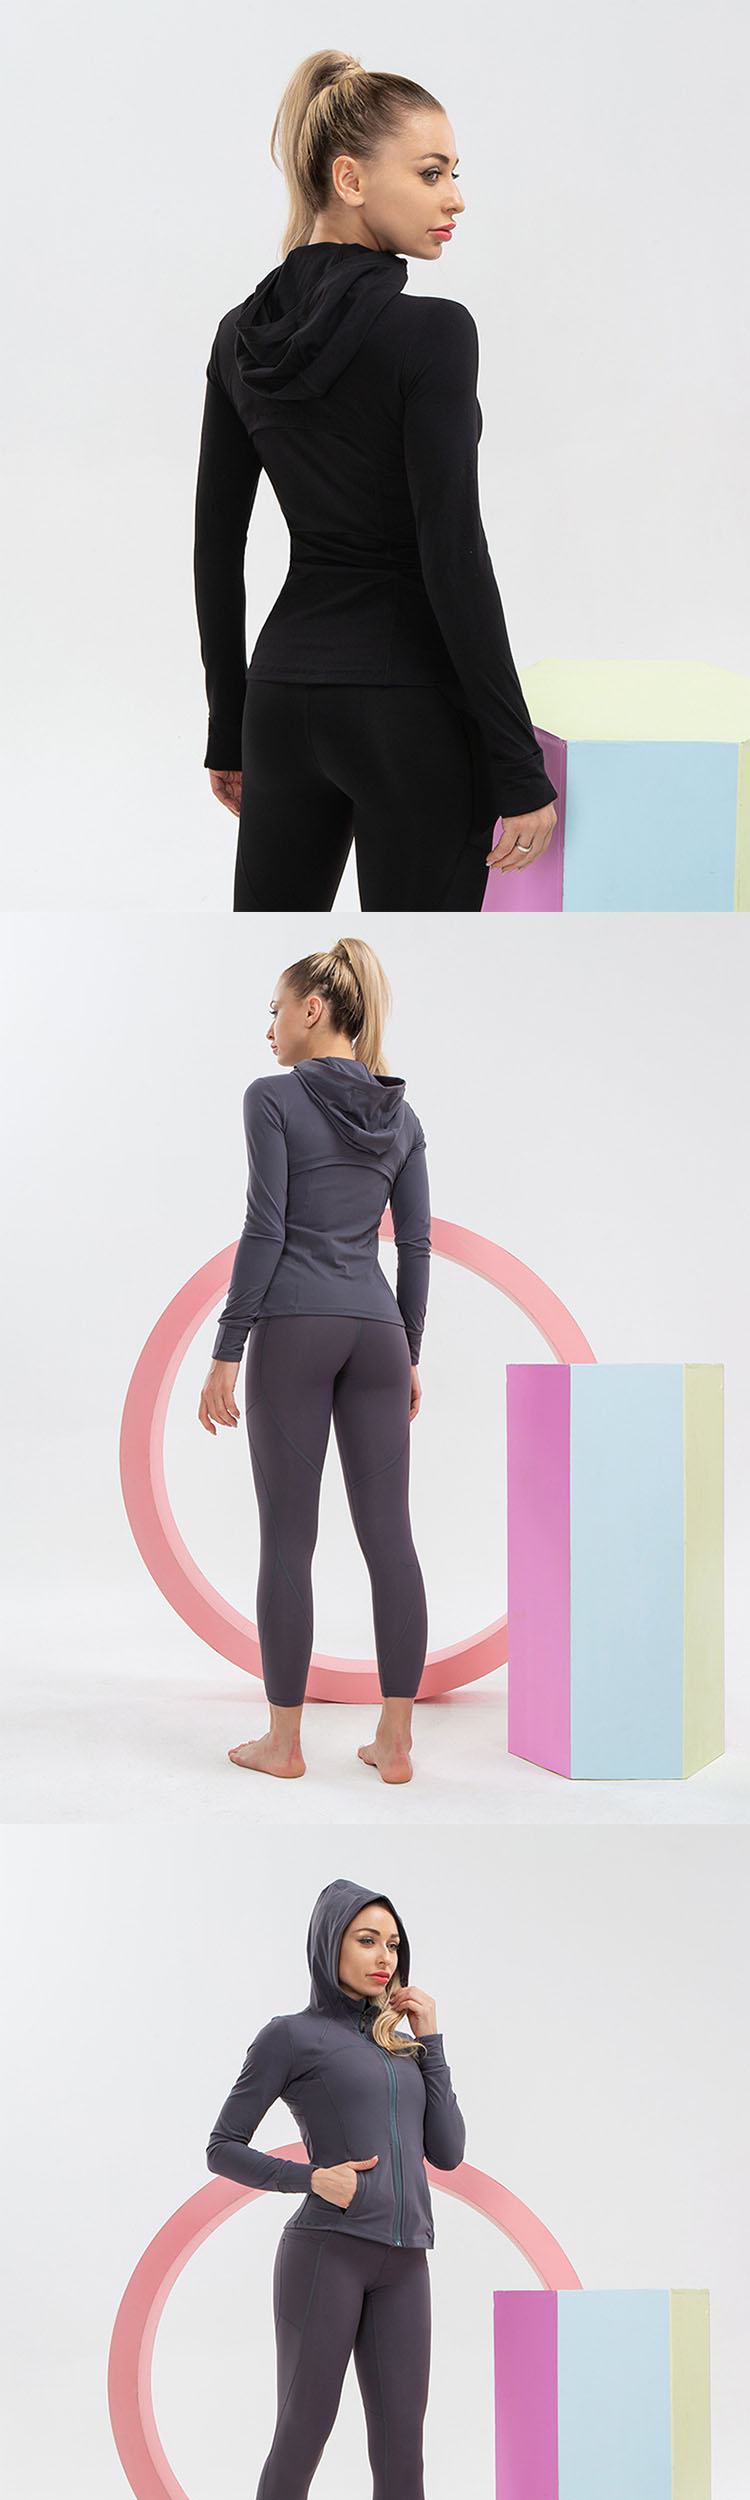 Profession 7 years of yoga clothes production and operation. we are professional.